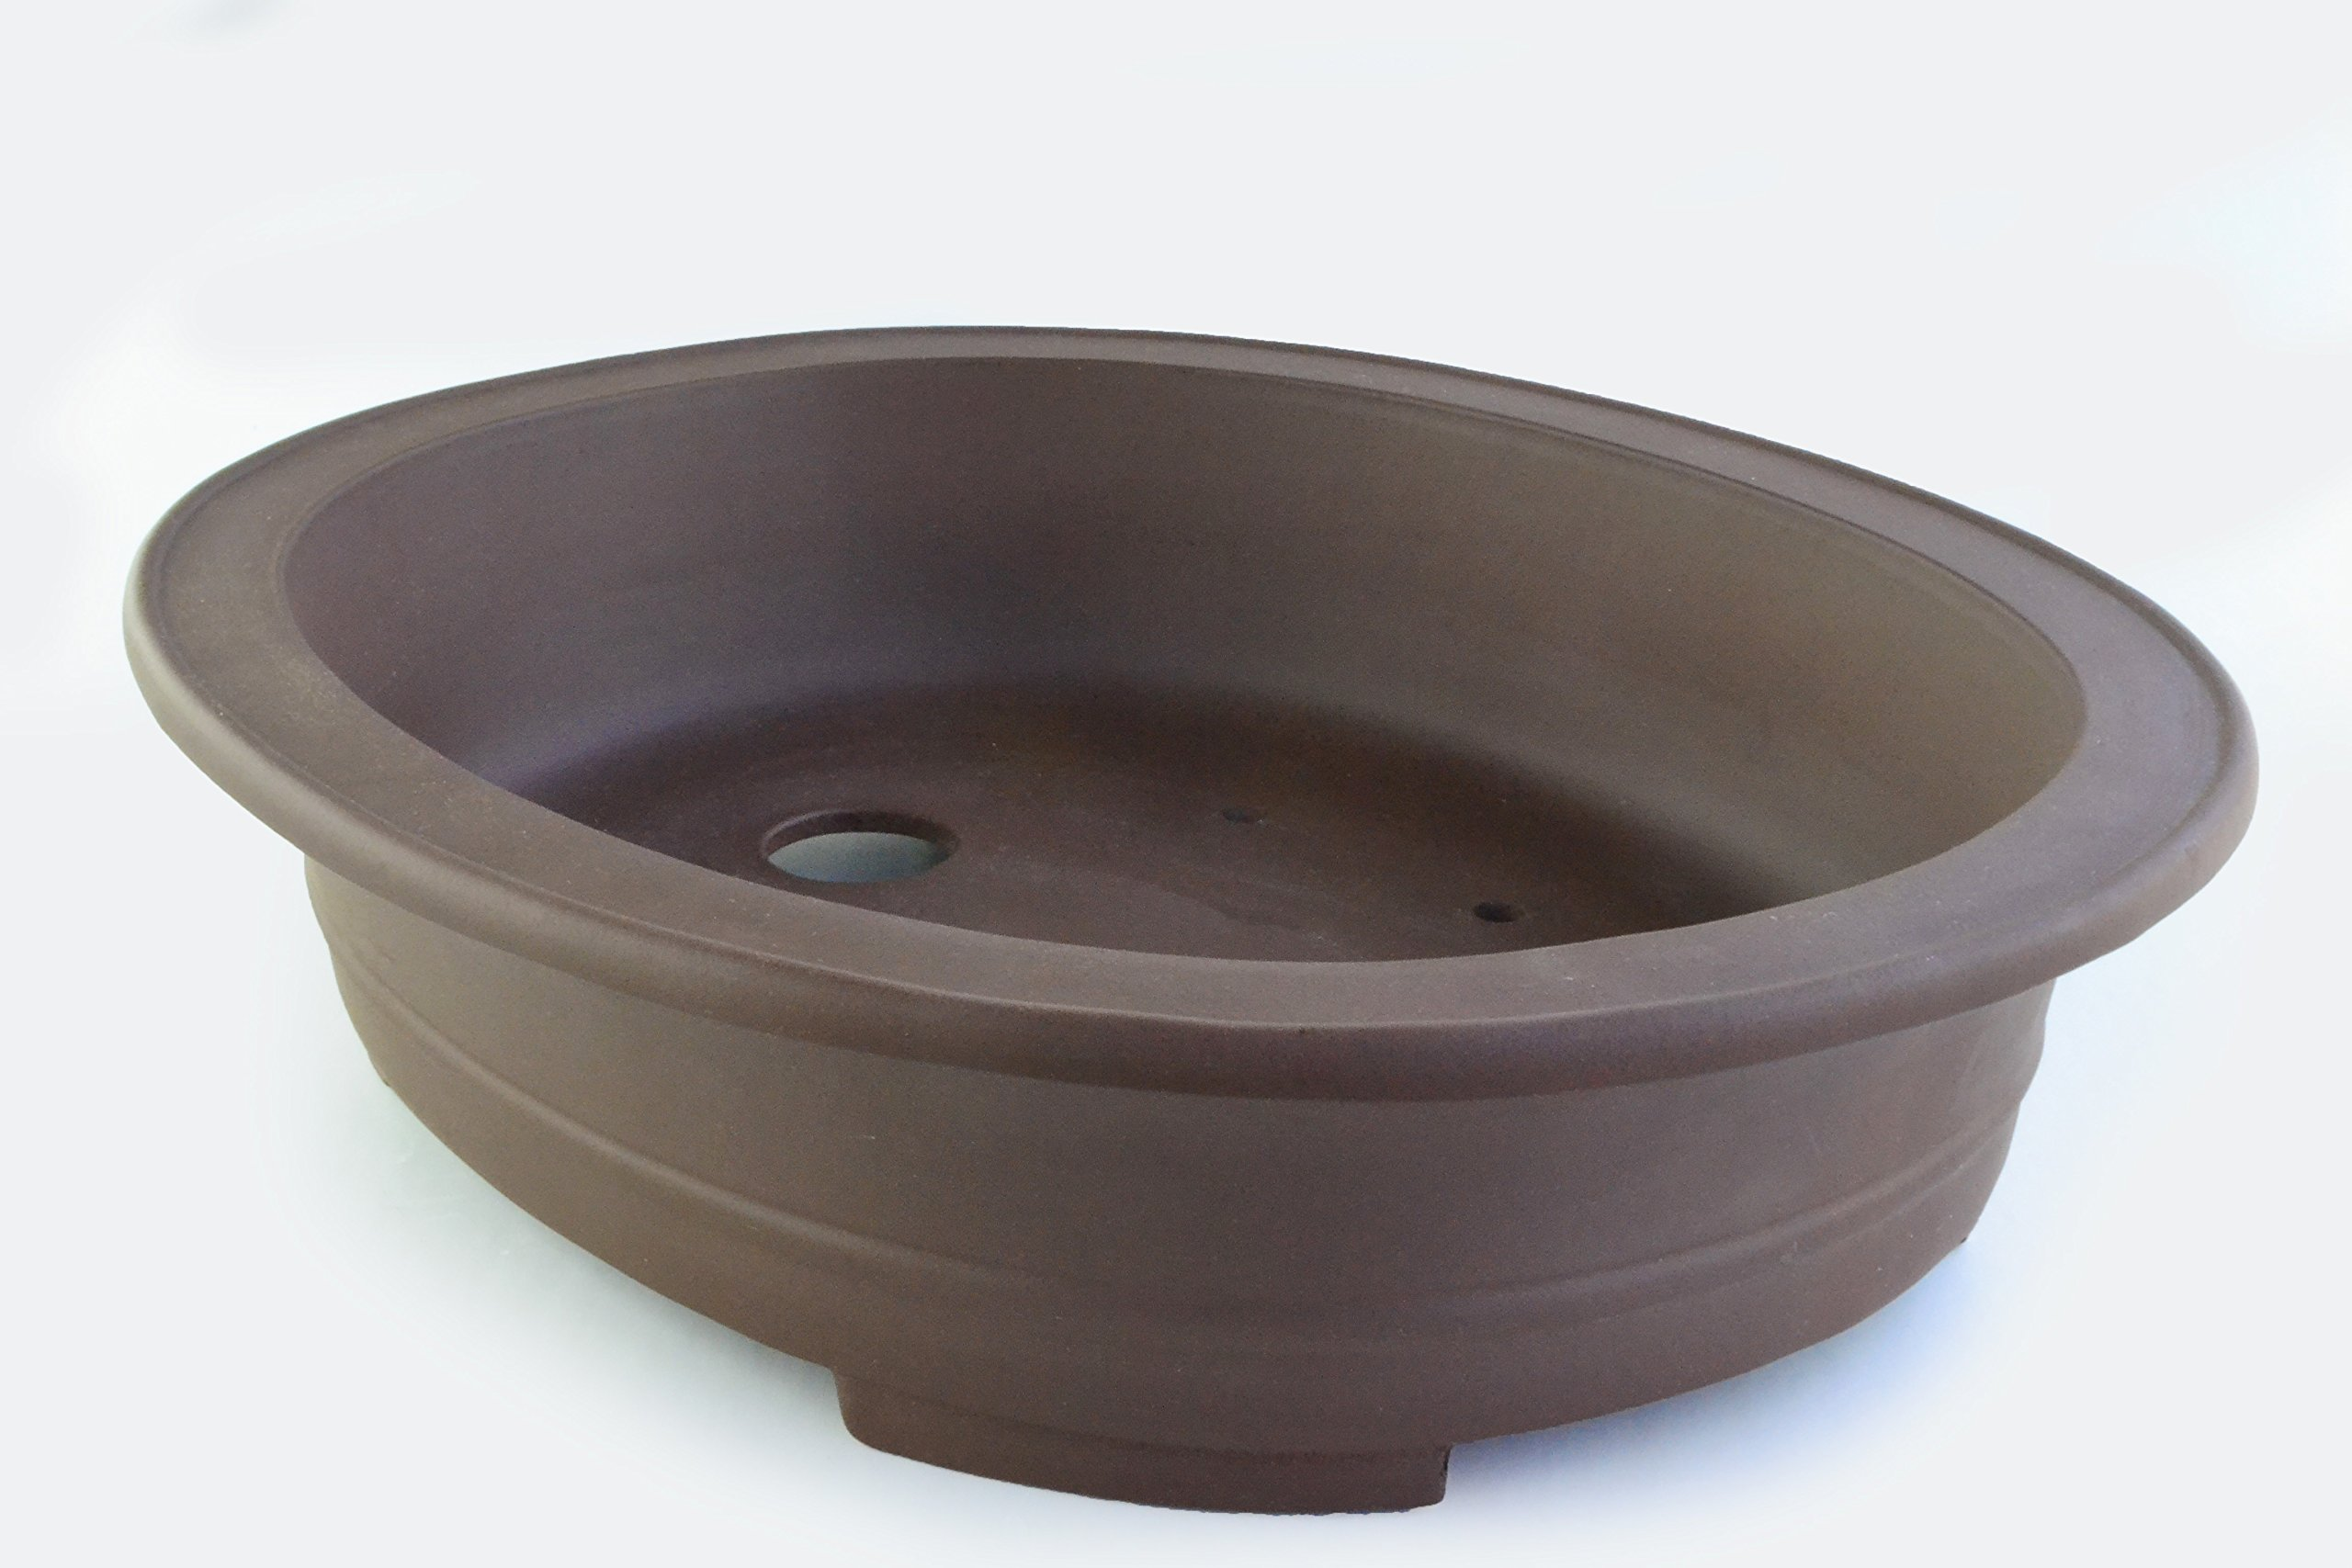 Large Unglazed 24'' Oval Yixing Purple Clay Ceramic Bonsai Pot(PB2-24)